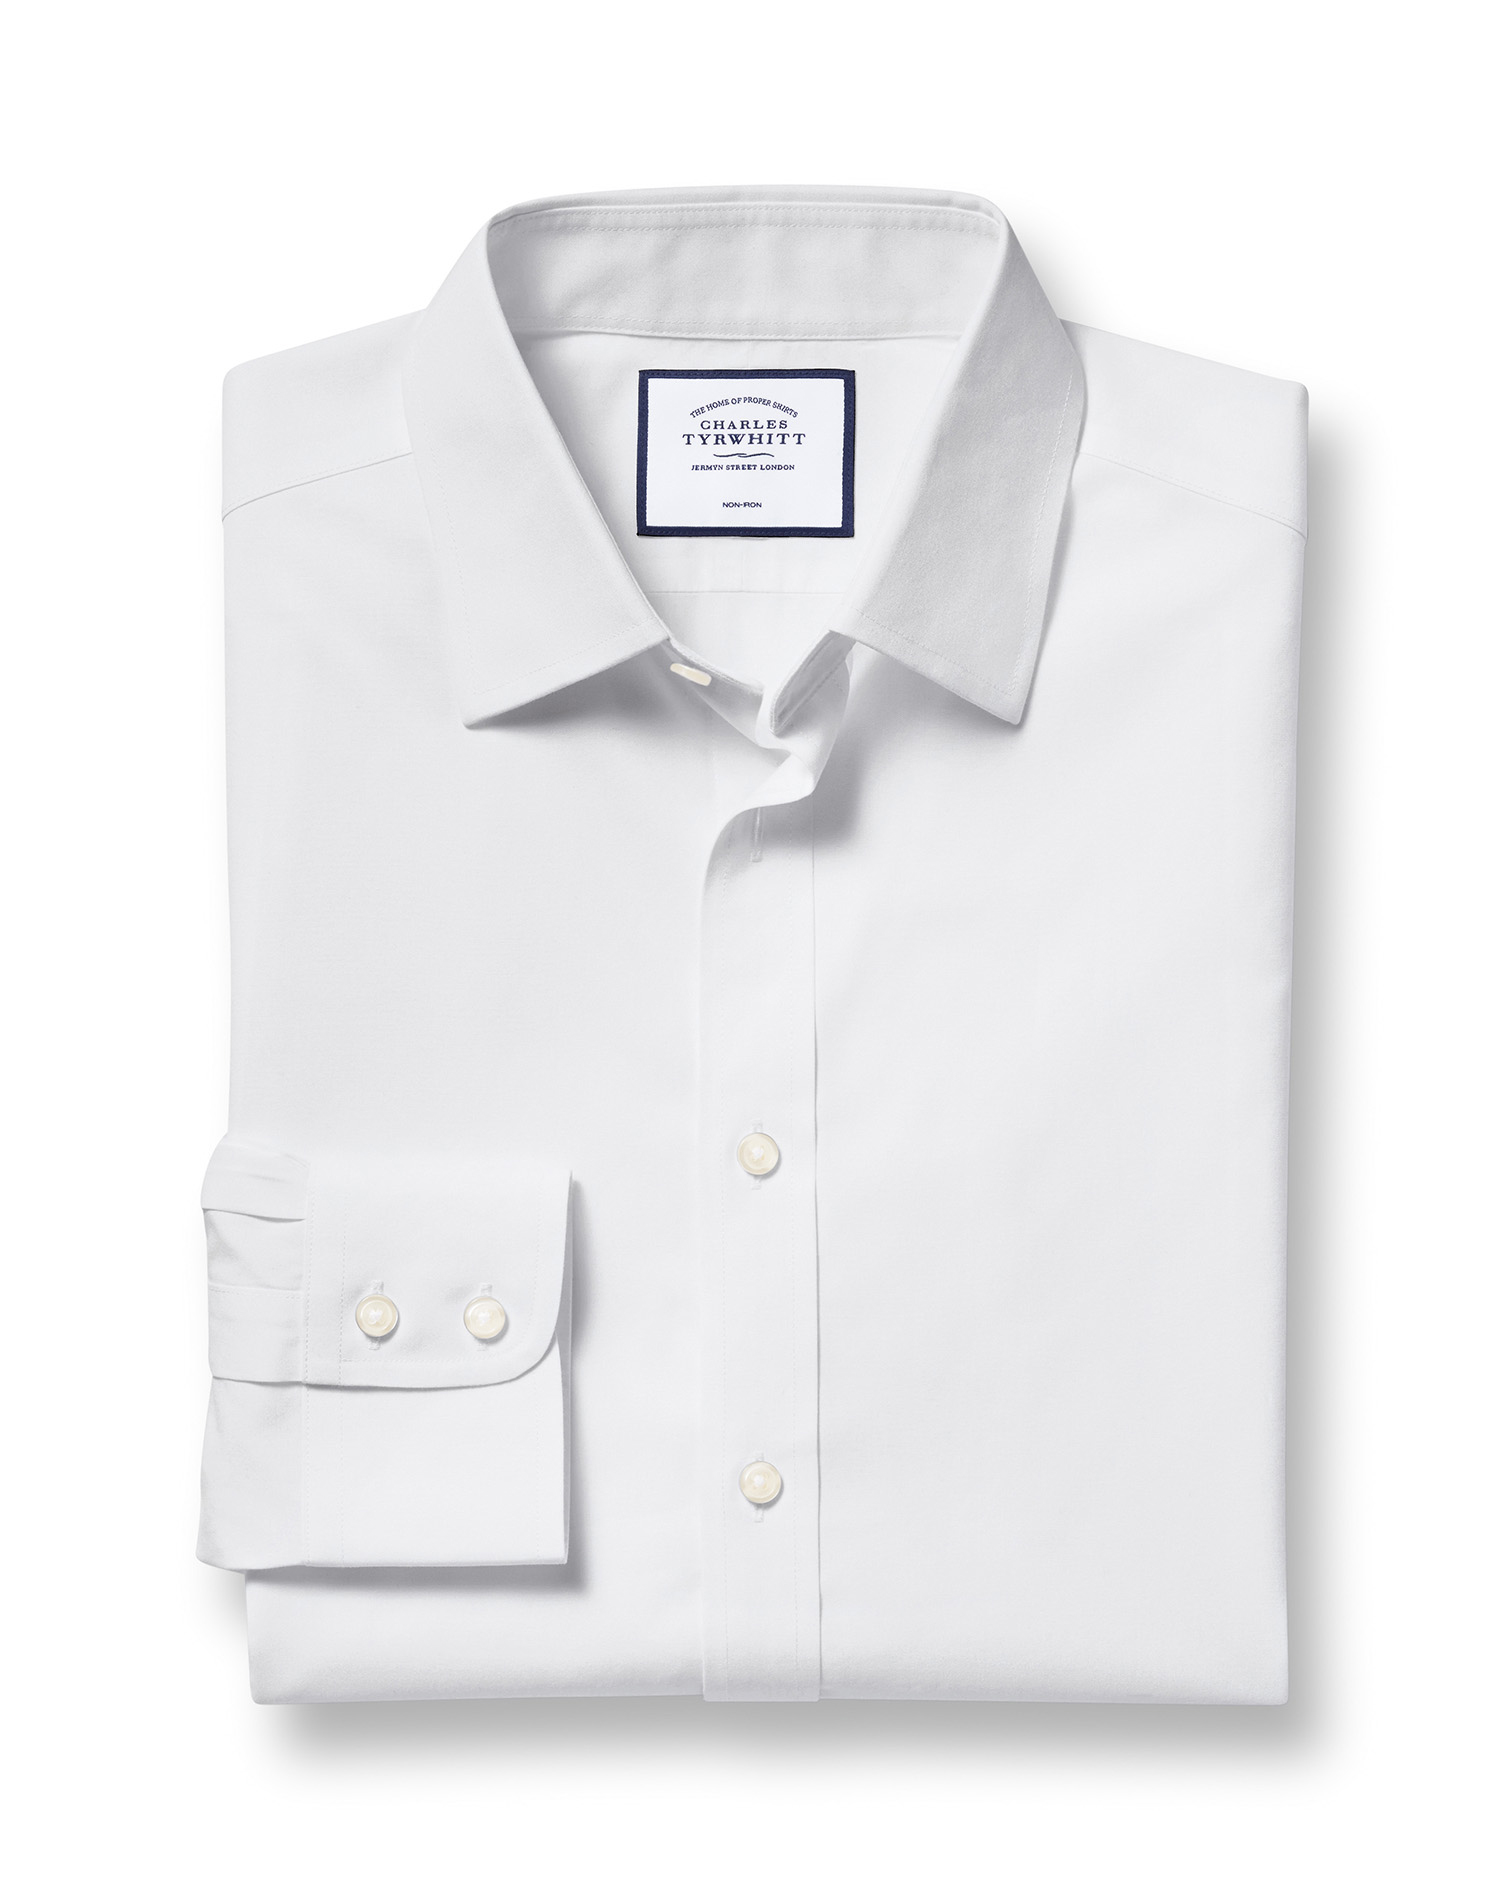 Extra Slim Fit White Non-Iron Poplin Cotton Formal Shirt Double Cuff Size 15.5/36 by Charles Tyrwhit